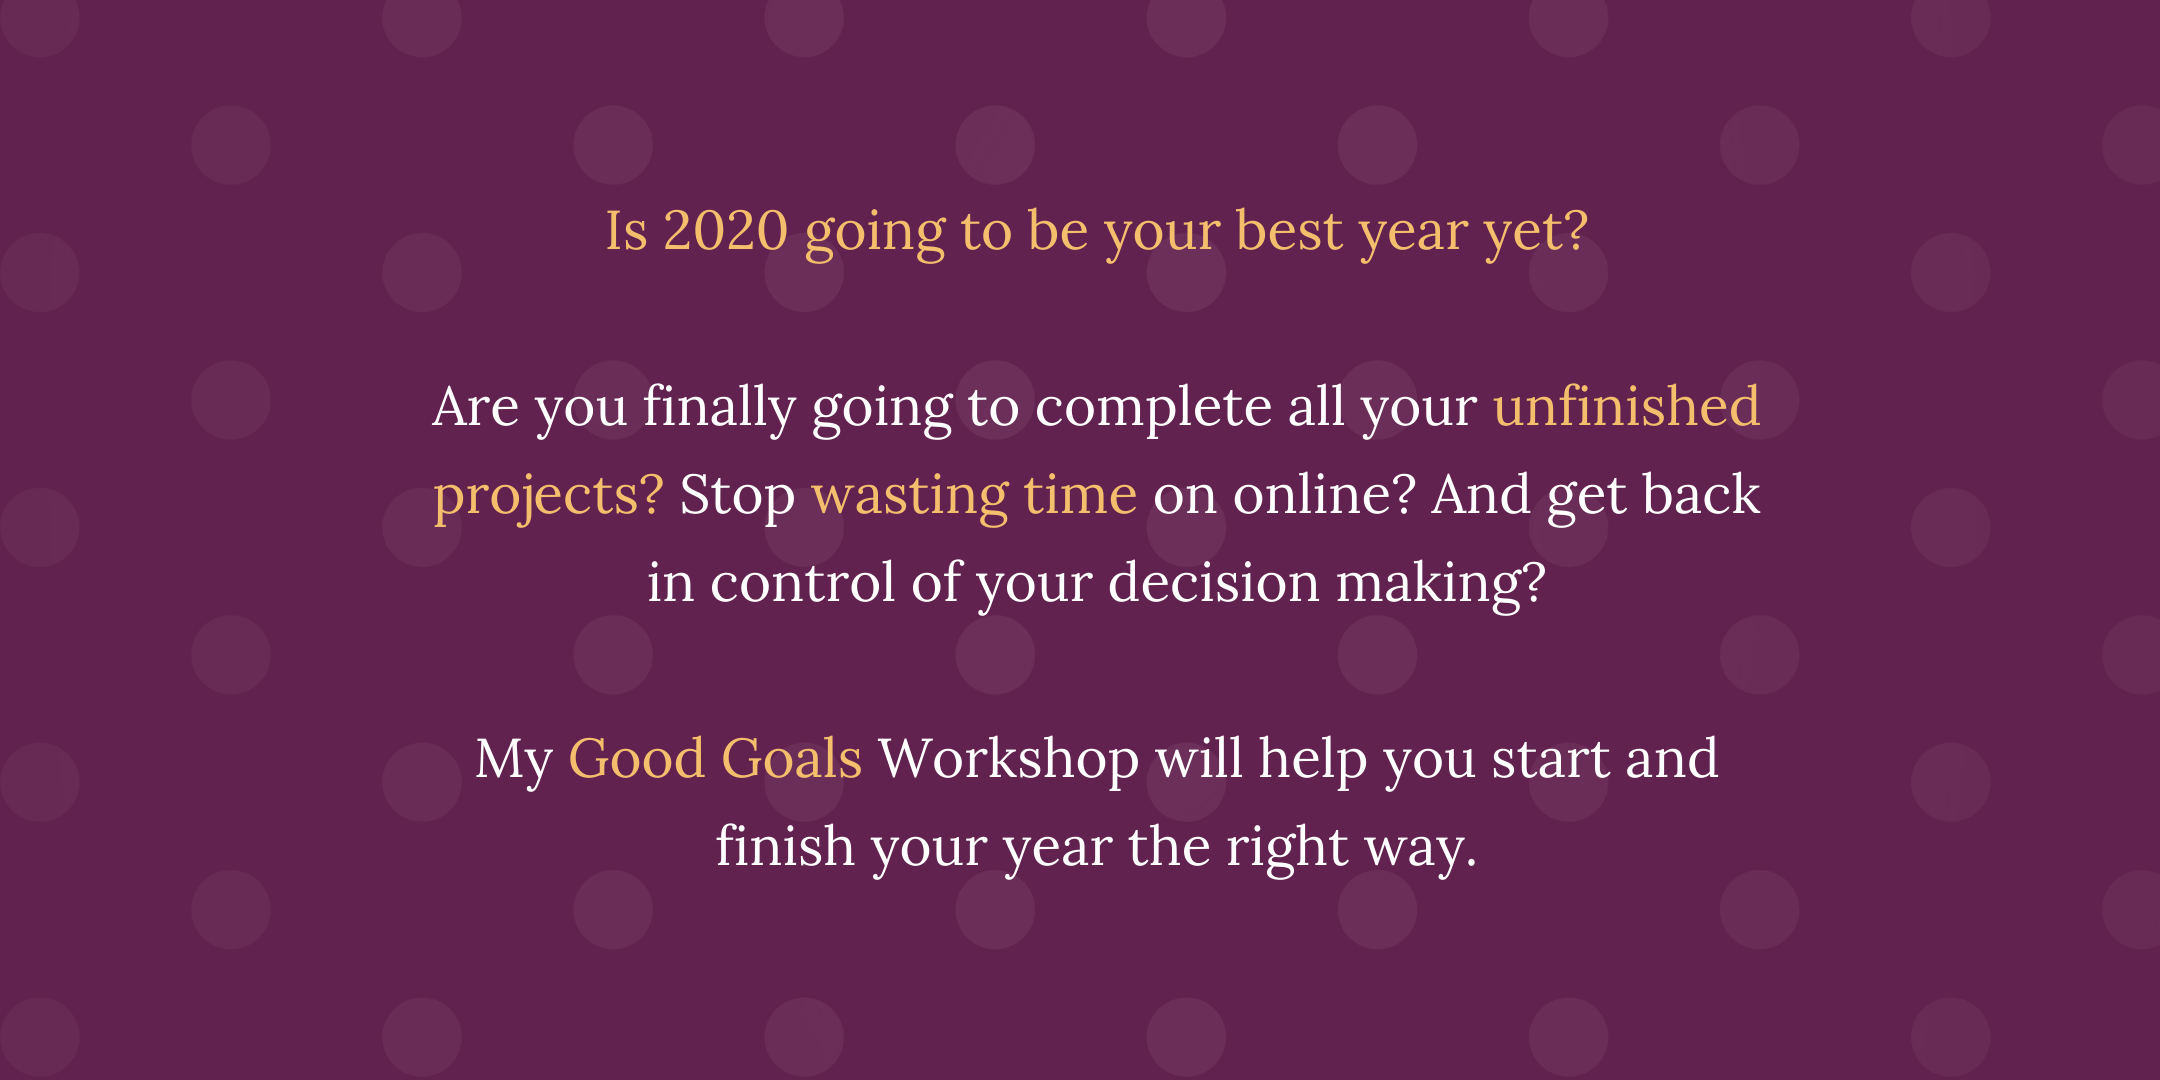 Is 2020 going to be your best year yet?  Are you finally going to complete all your unfinished projects? Stop wasting time on online? And get back in control of your decision making?  My Good Goals Workshop will help you start and finish your year the right way.